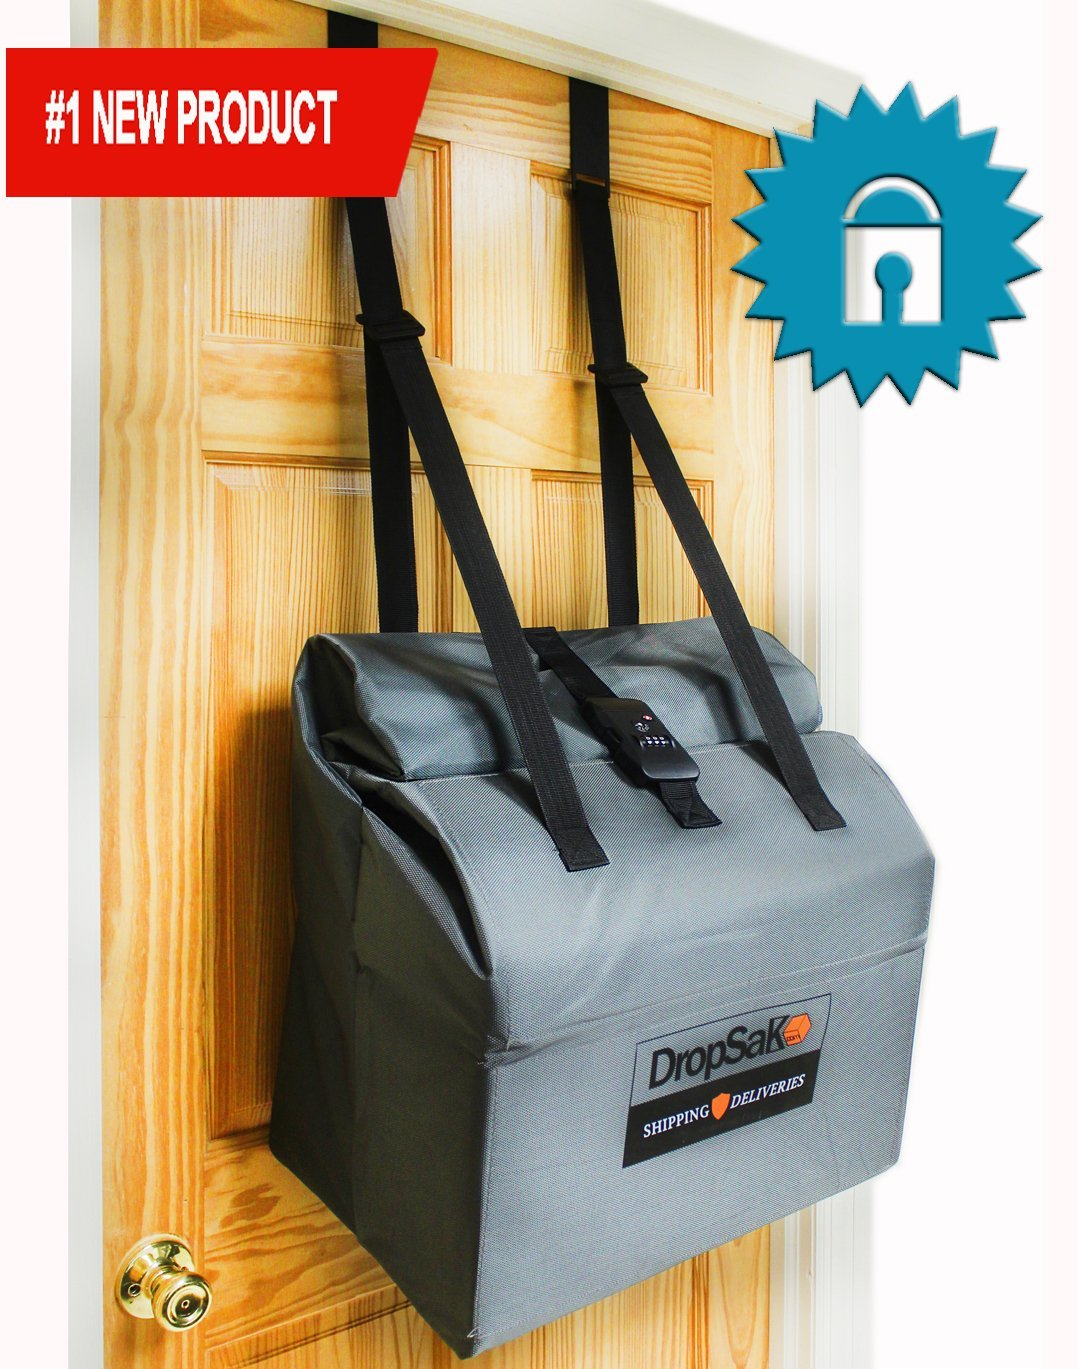 First Ever Secure Large Capacity Over Front Door Removable Package Drop Box/Mailbox with Combination Lock - DropSak Ultra. Prevents Package and Identity Theft.